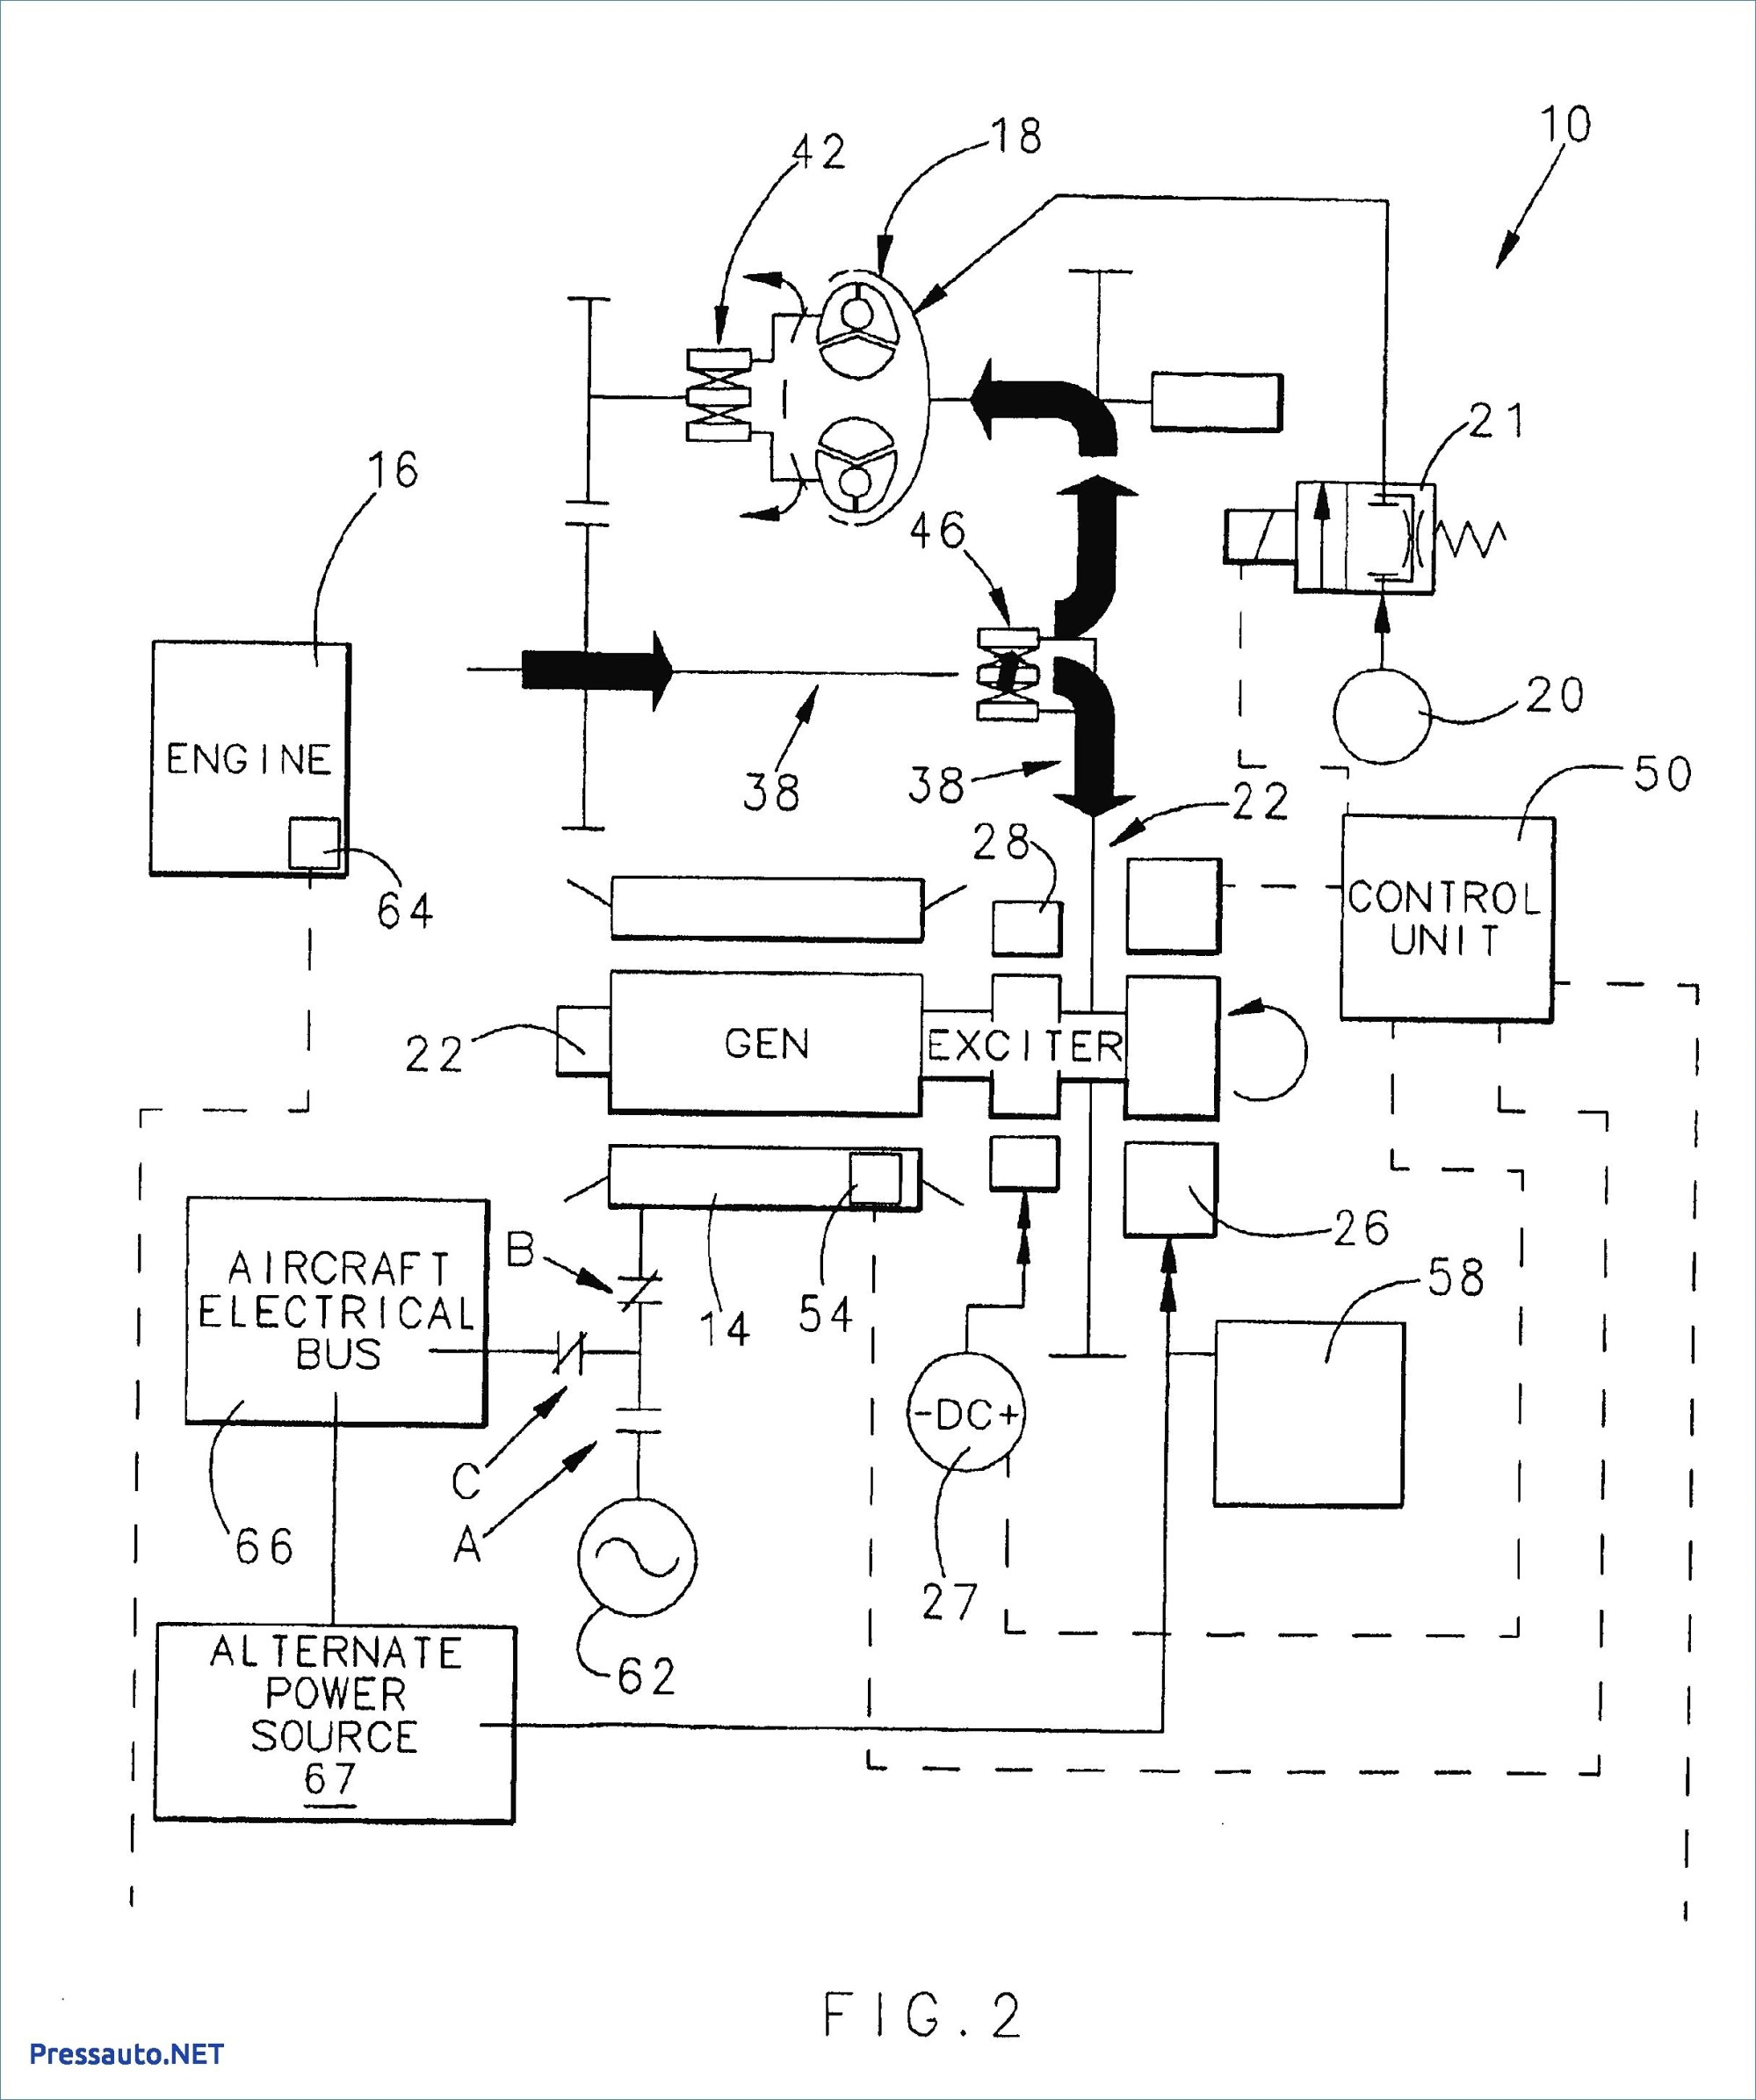 hight resolution of ac delco 4 wire alternator wiring diagram free wiring diagramac delco 4 wire alternator wiring diagram